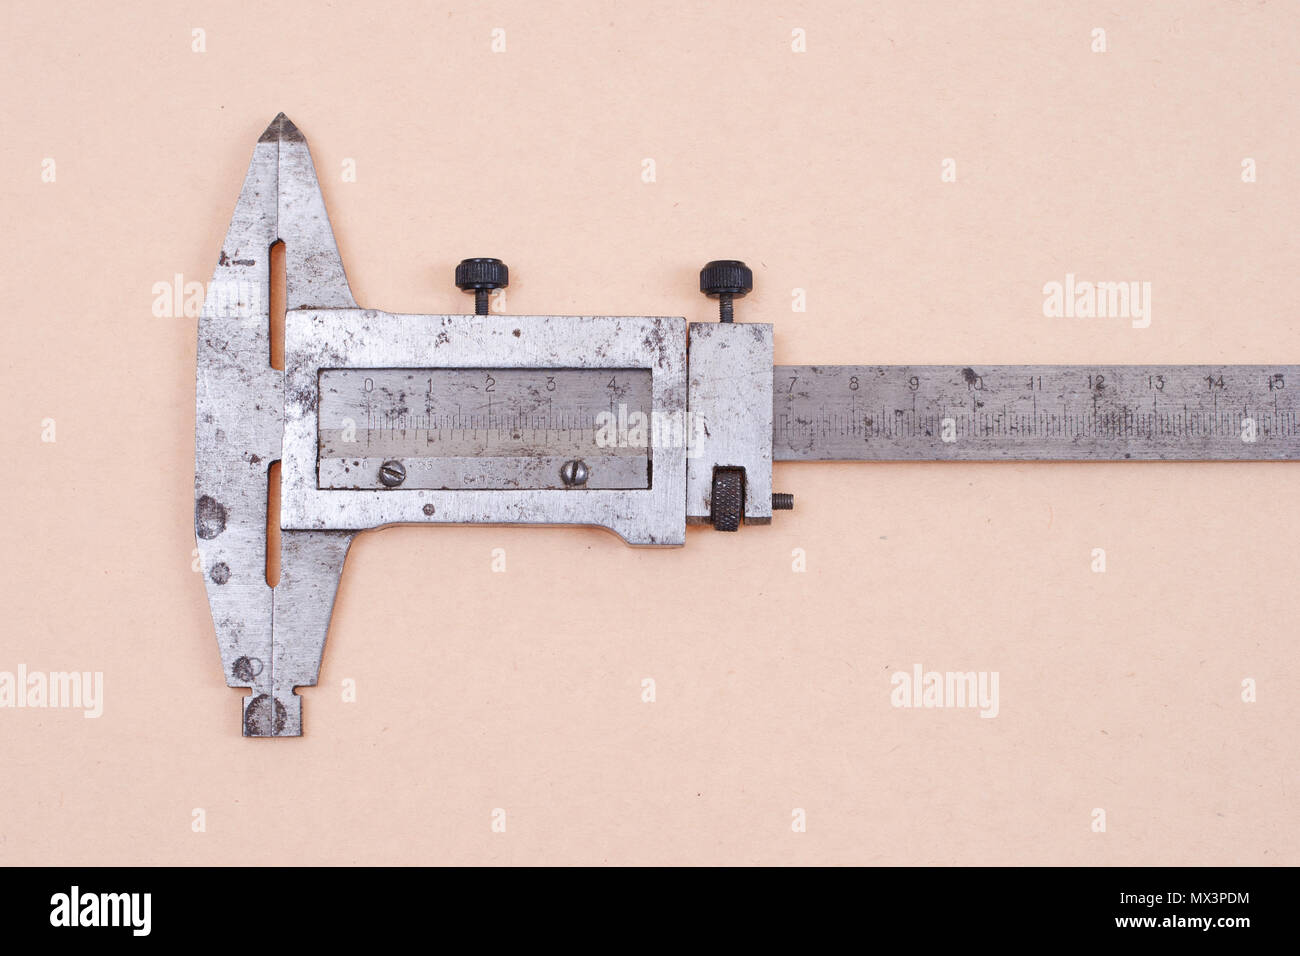 Vernier calipers isolated on old paper background - Stock Image